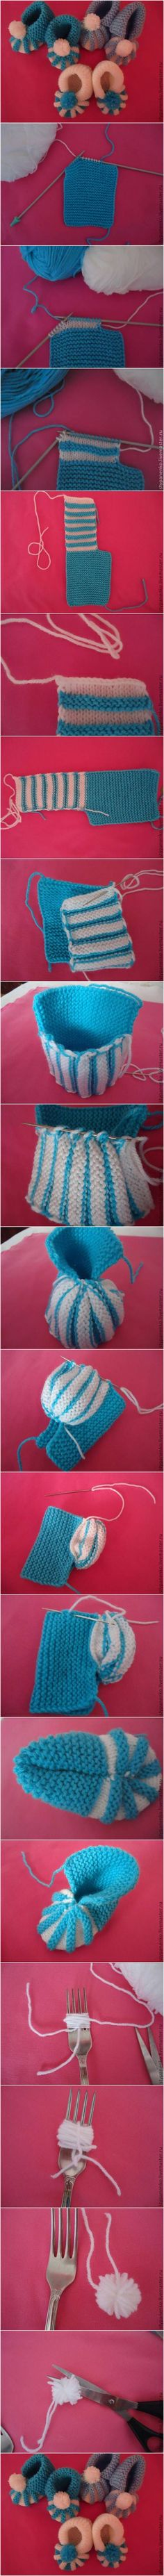 How to DIY Cute Pom-pom Decorated Knitted Baby Booties #craft #knitting #pattern #booties